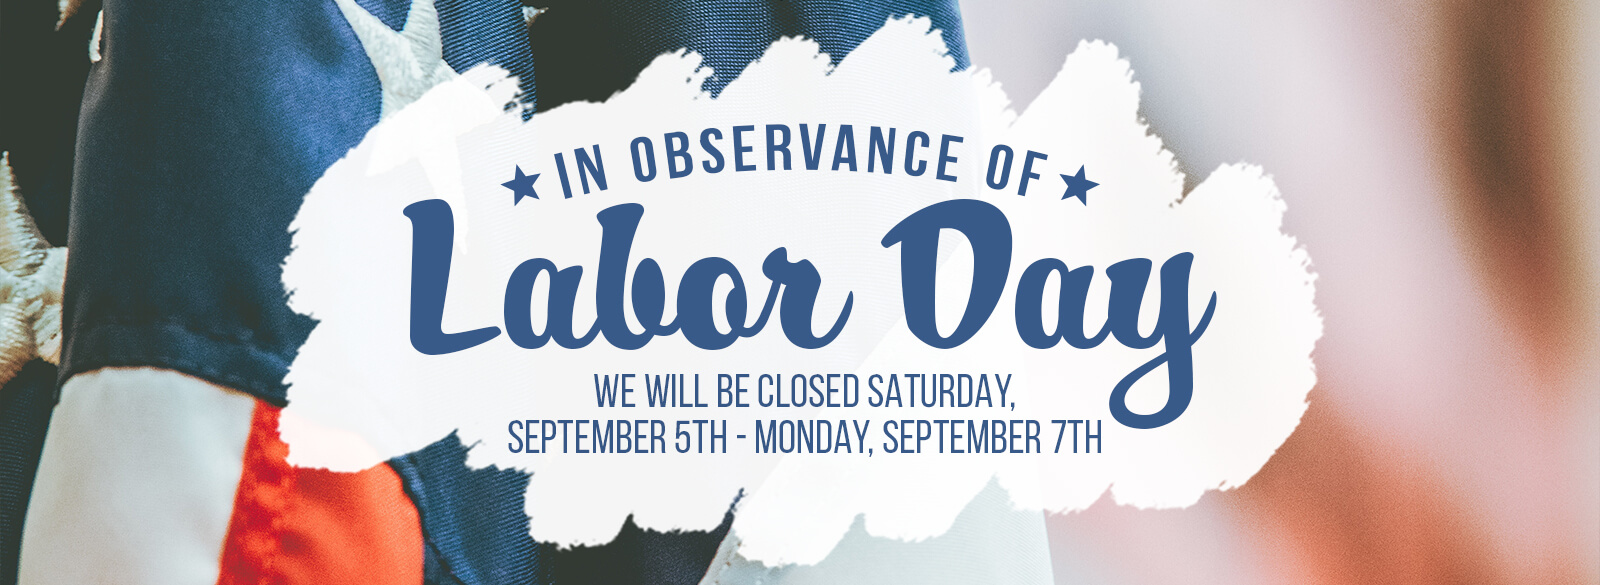 TriAm_LaborDay_Banner_090220.jpg